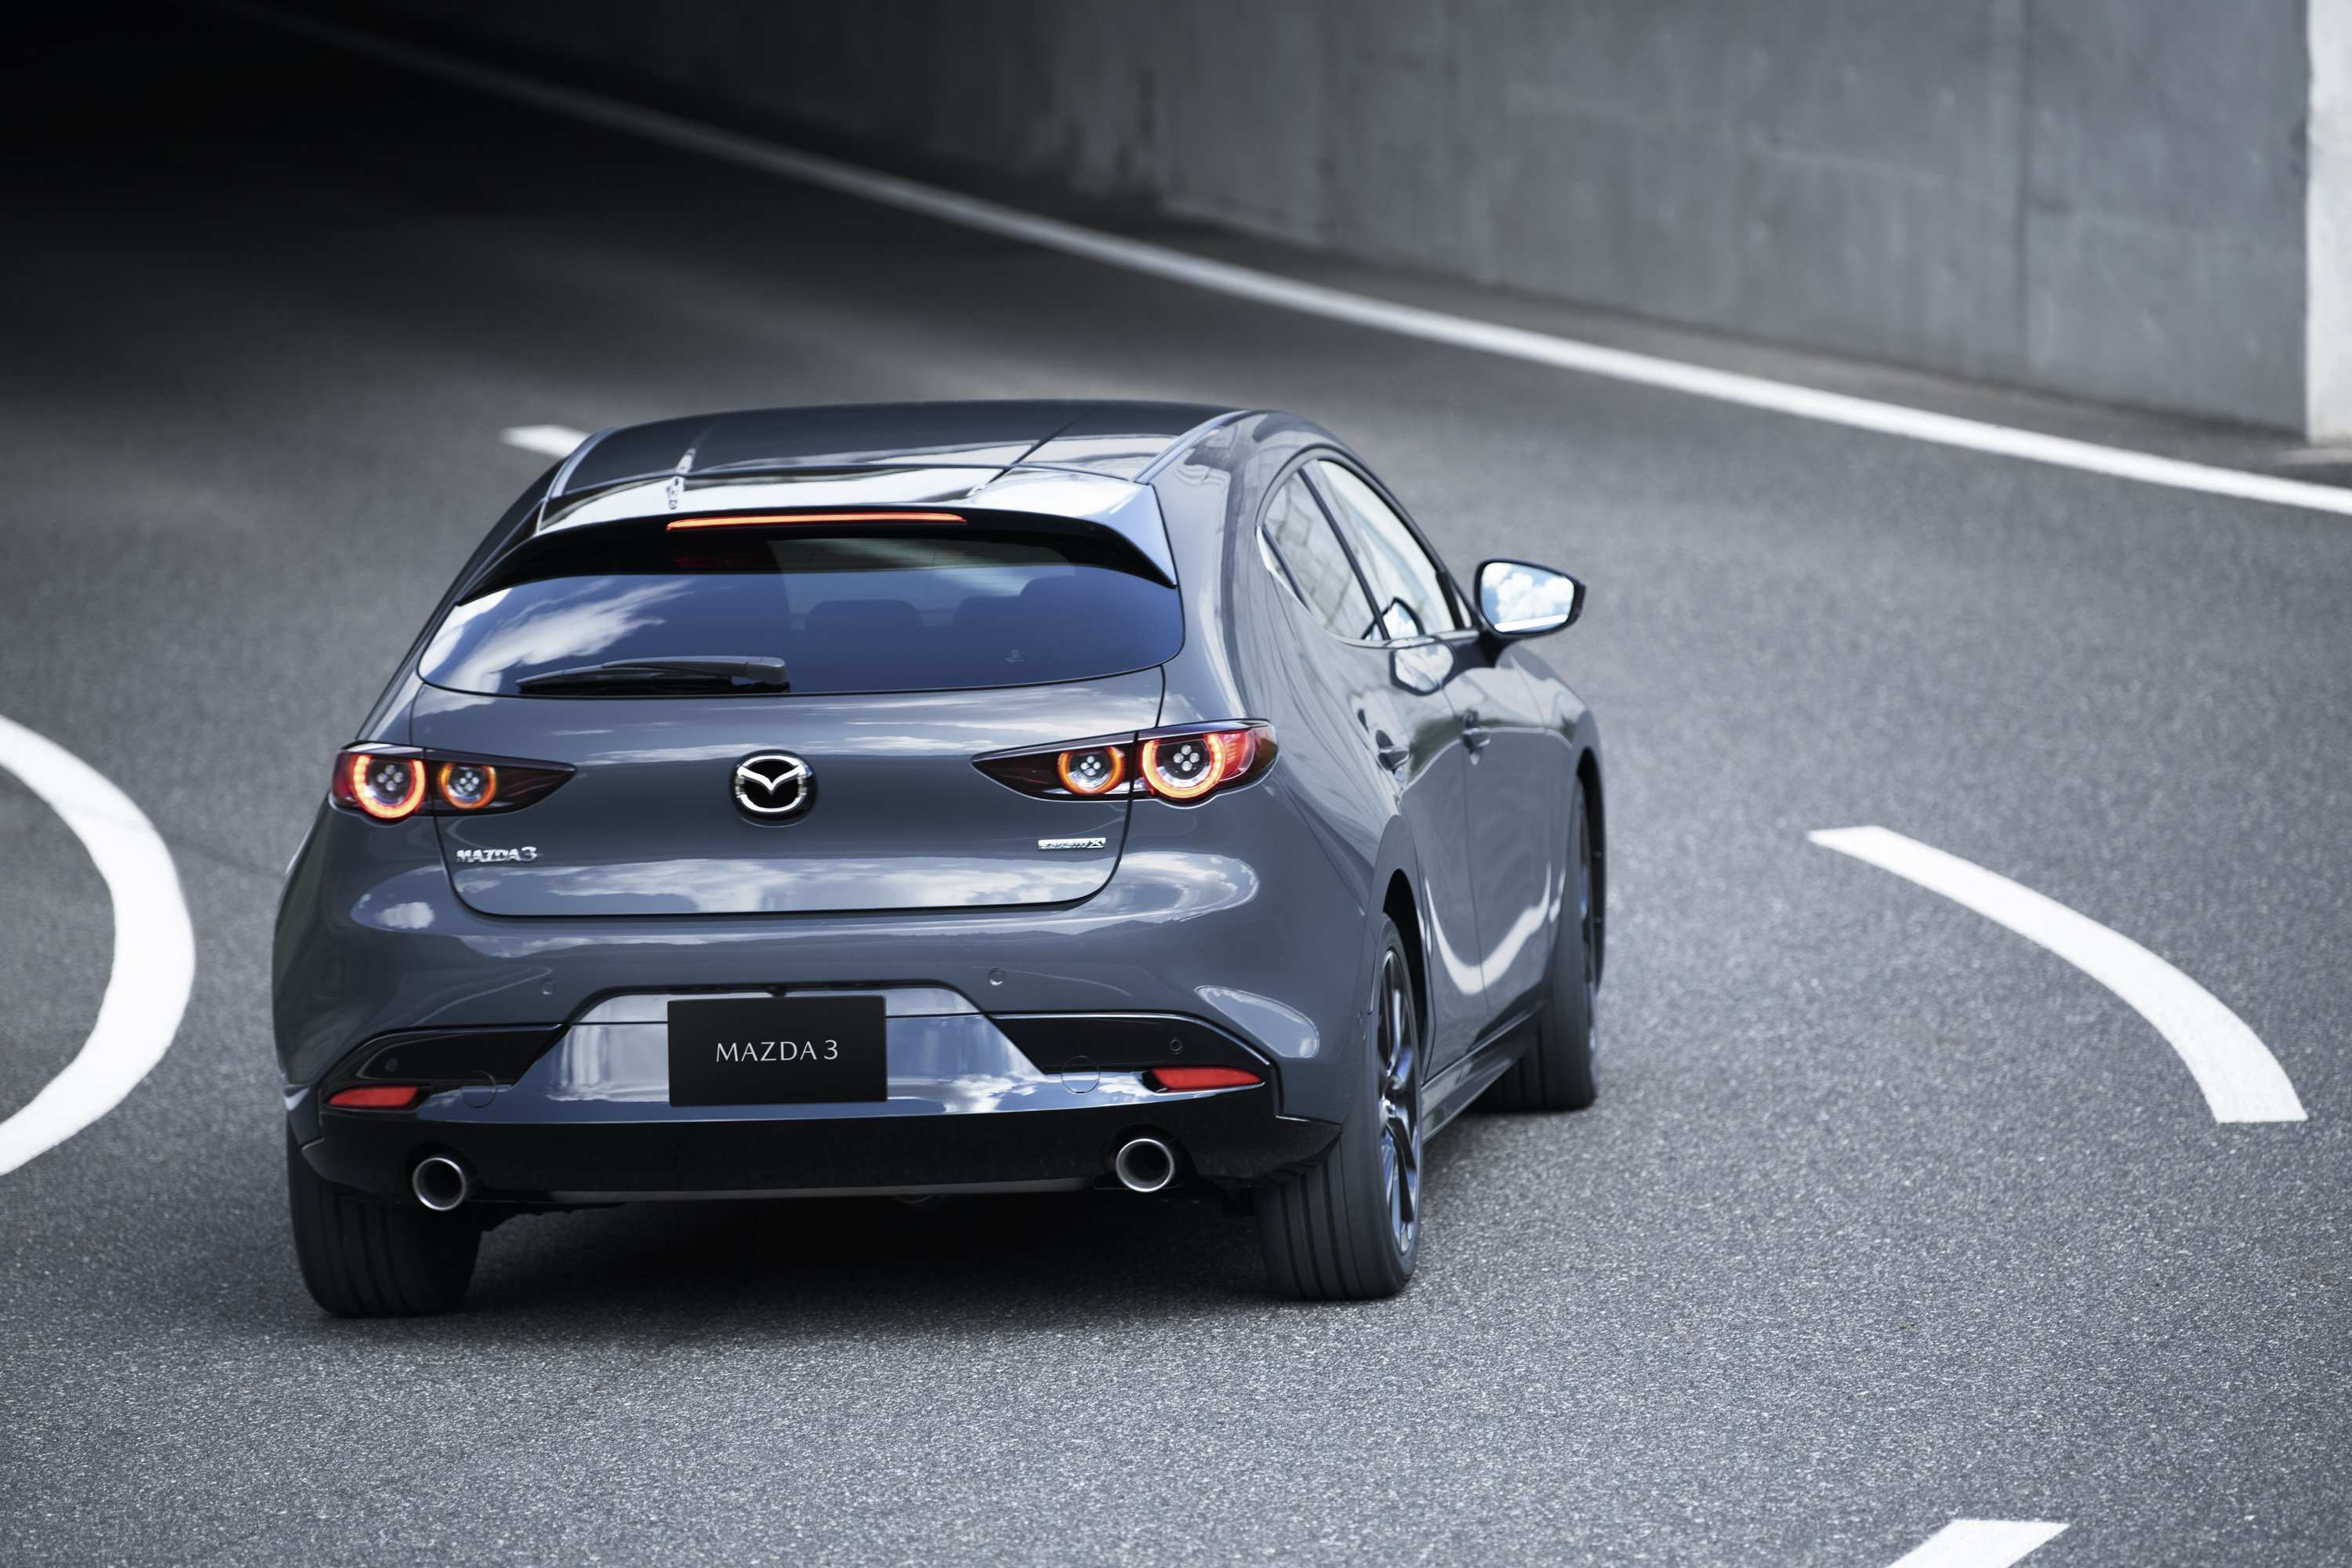 99 The Best Mazda Ev 2020 Release Date And Concept